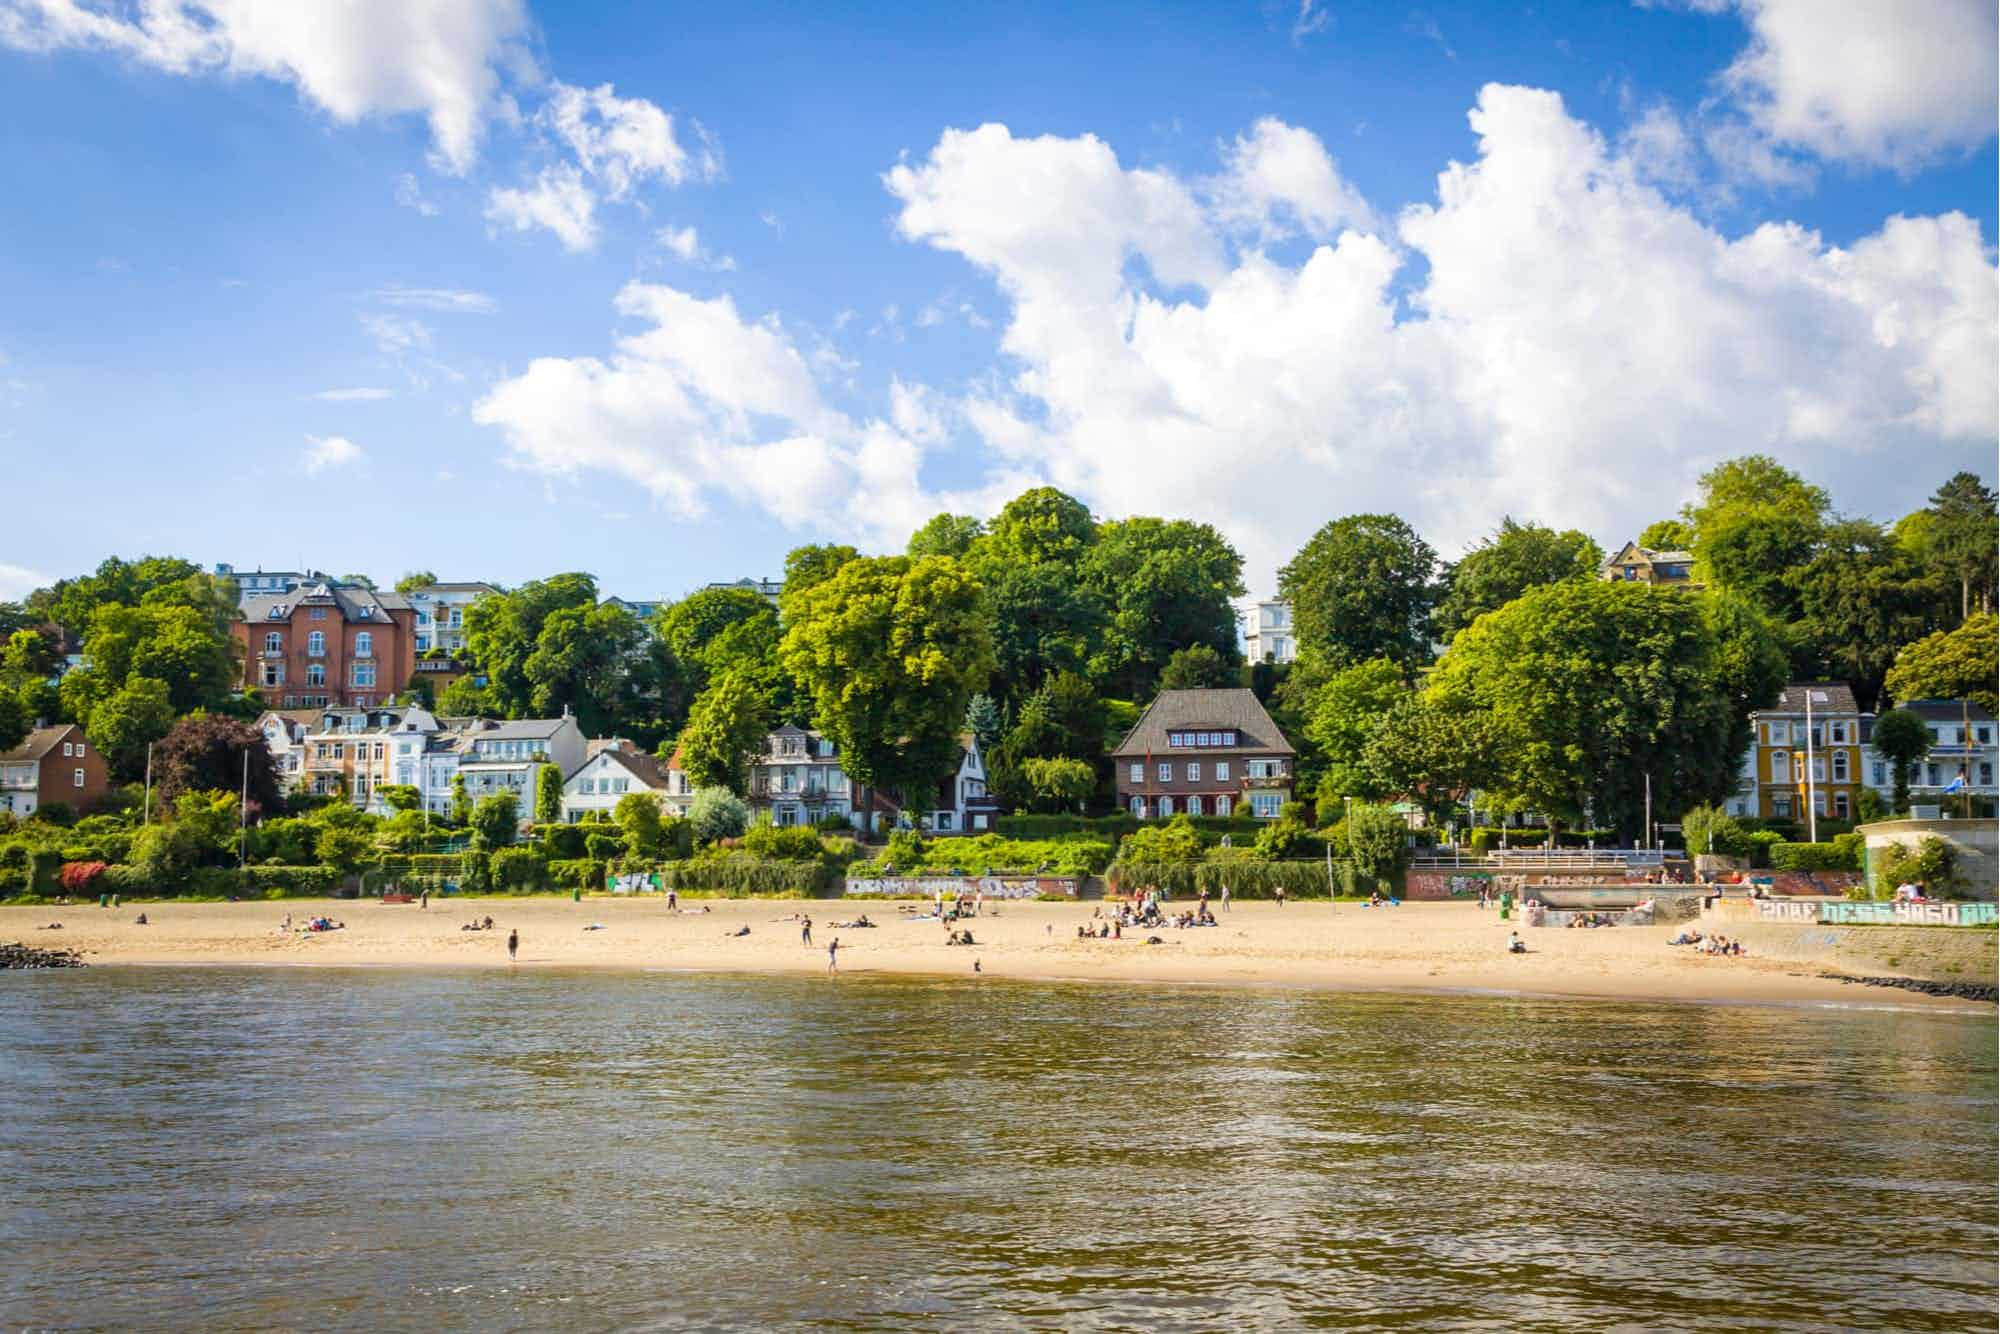 Summer view of the beach on the Elbe river